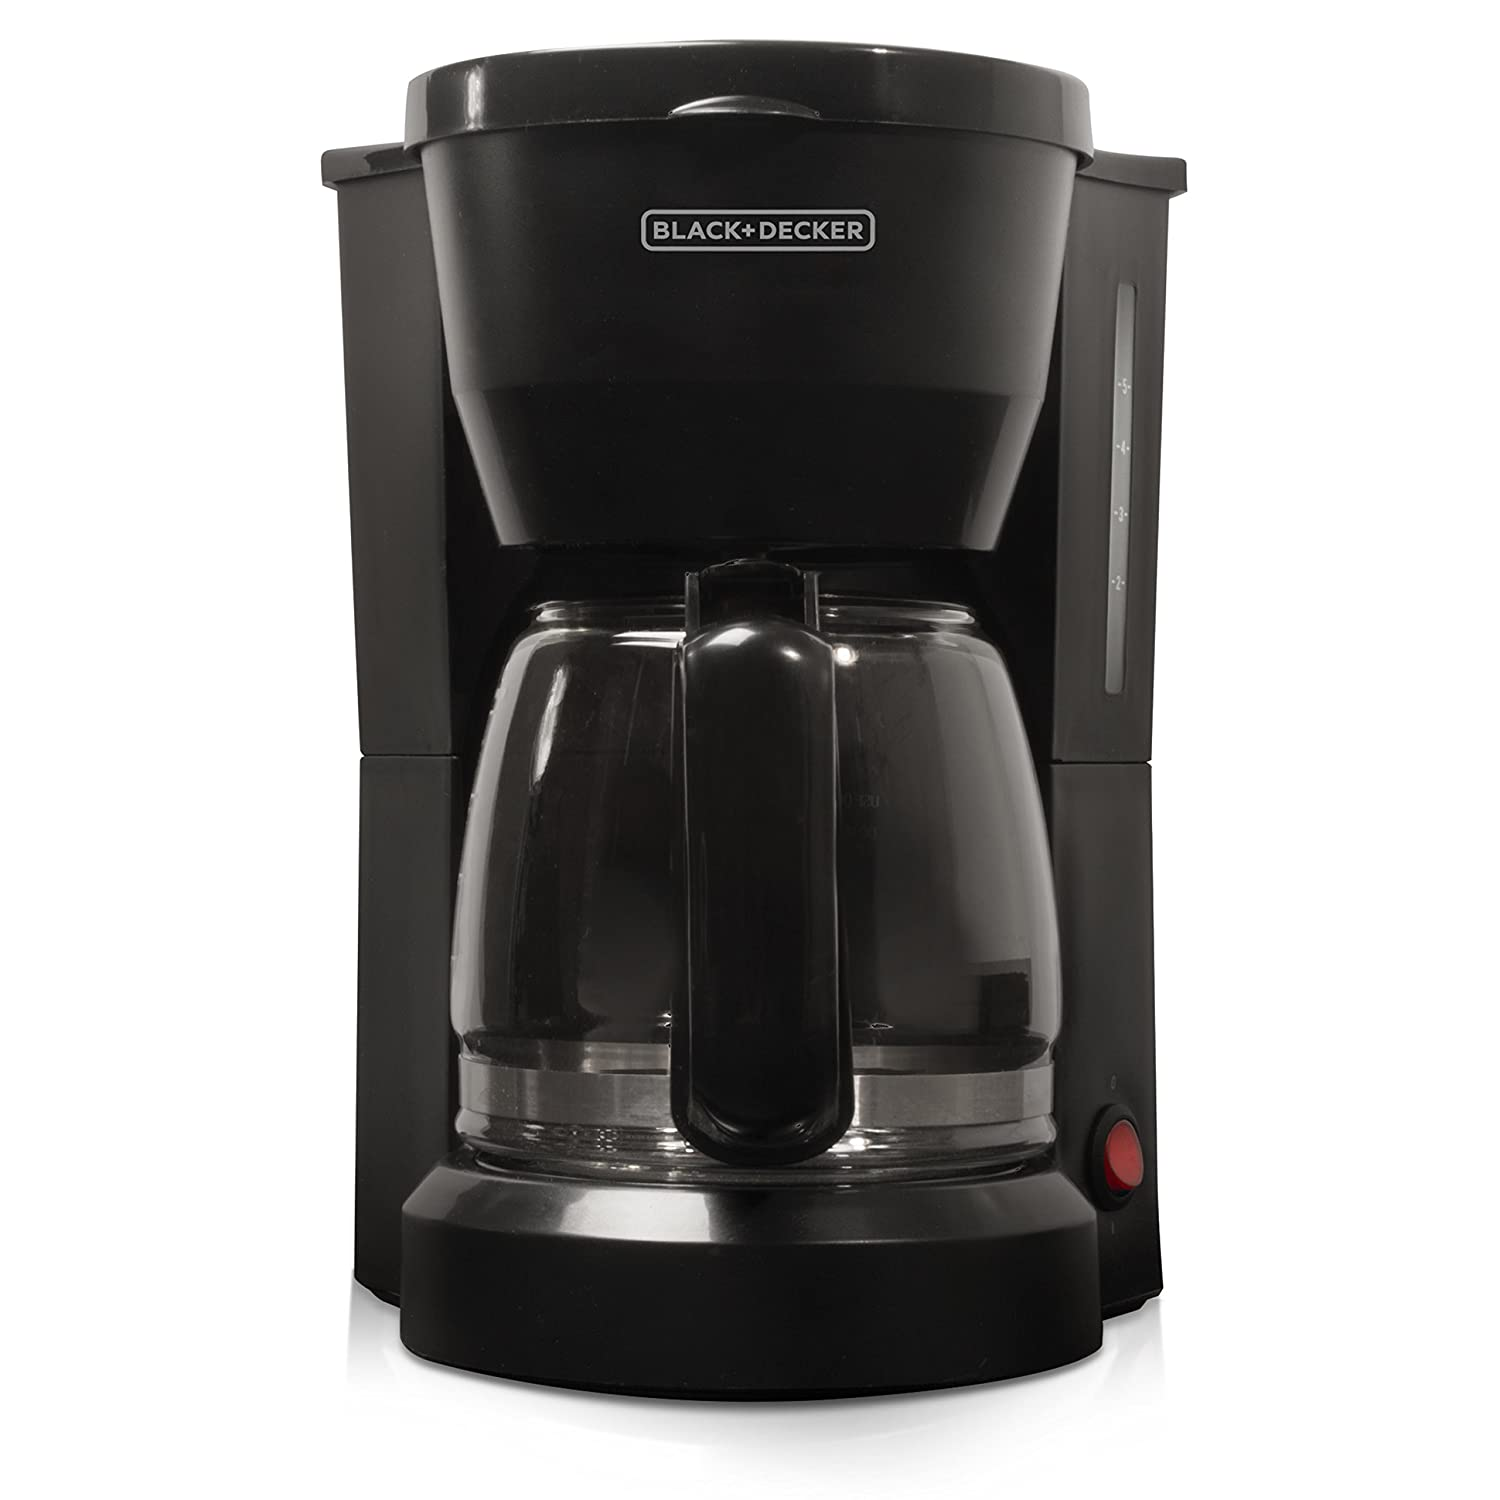 BLACK+DECKER 5-Cup Coffeemaker, Black, DCM600B